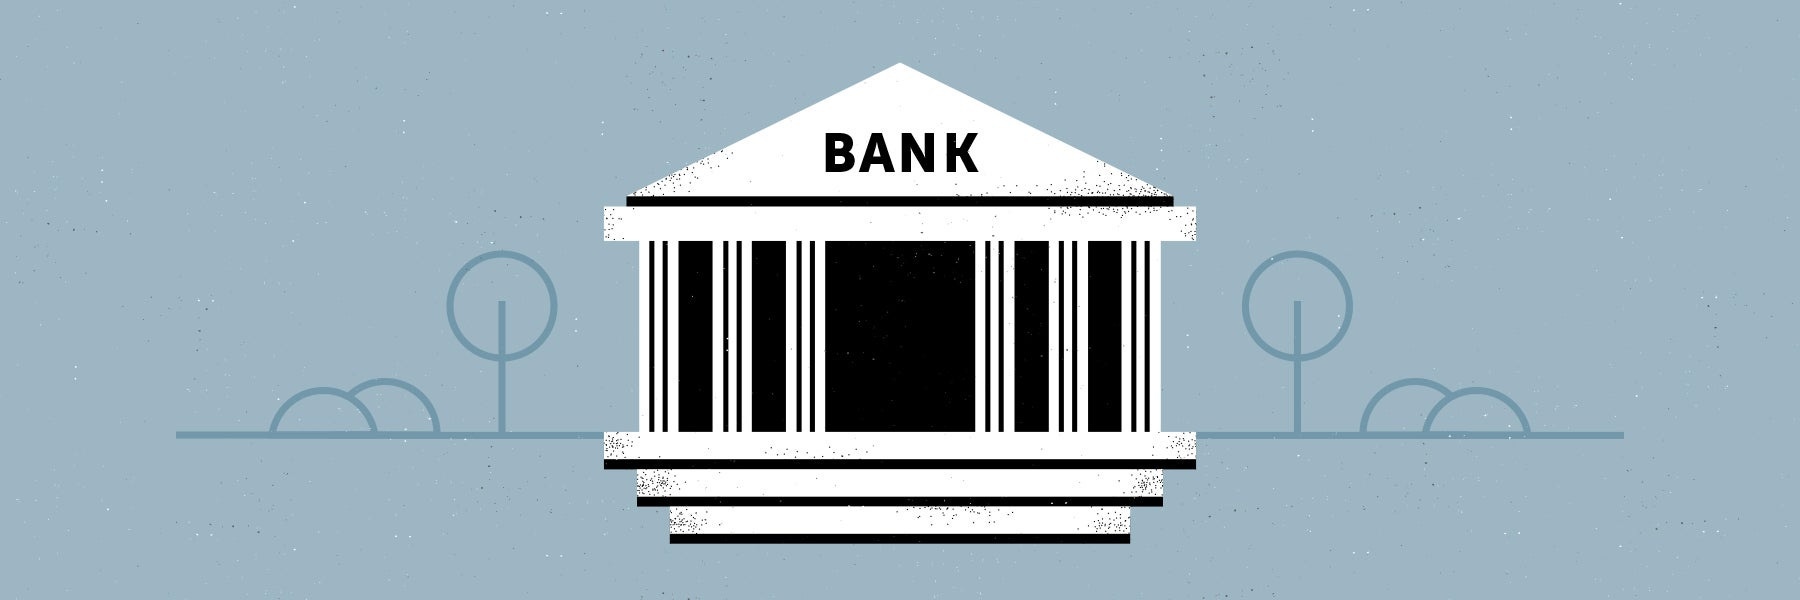 graphic of bank